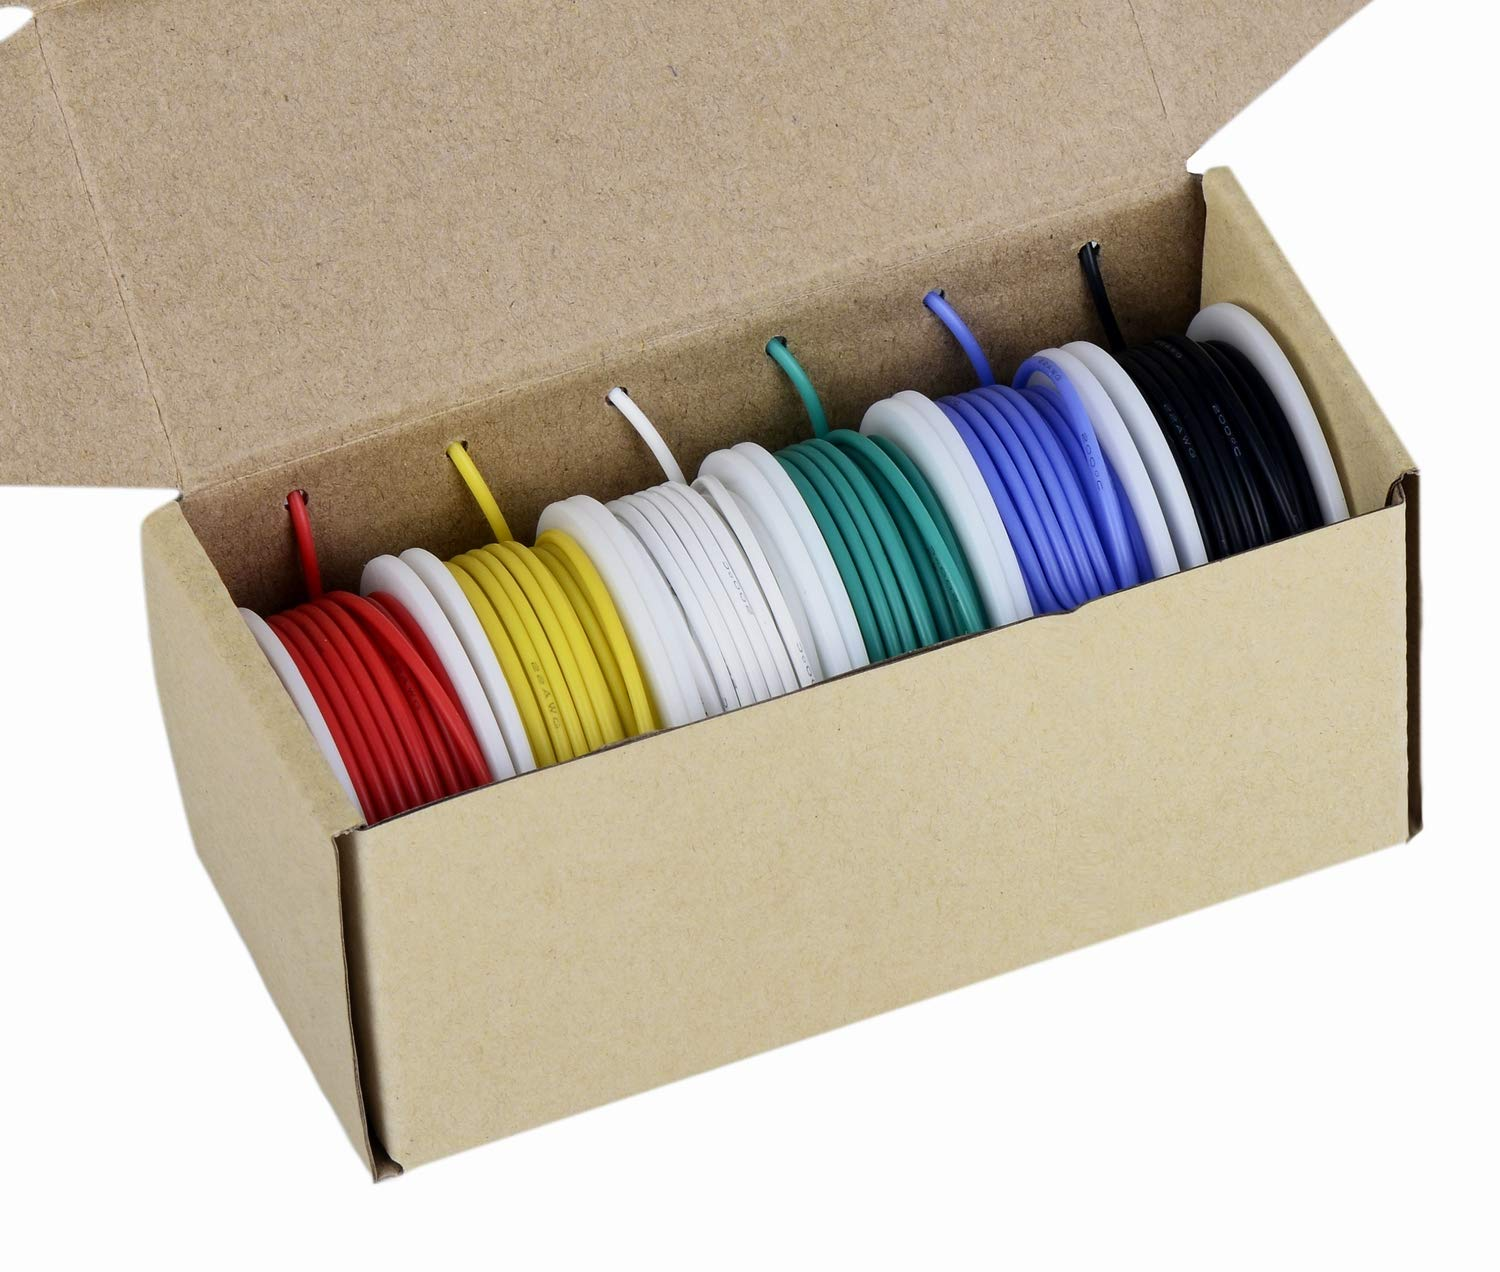 24 Gauge Wire, Electrical Wire Kit 24 AWG Flexible Silicone Wire(6 Different Colored 30 Feet spools) 300V Hookup Wire High Temperature Resistance TUOFENG 24awg